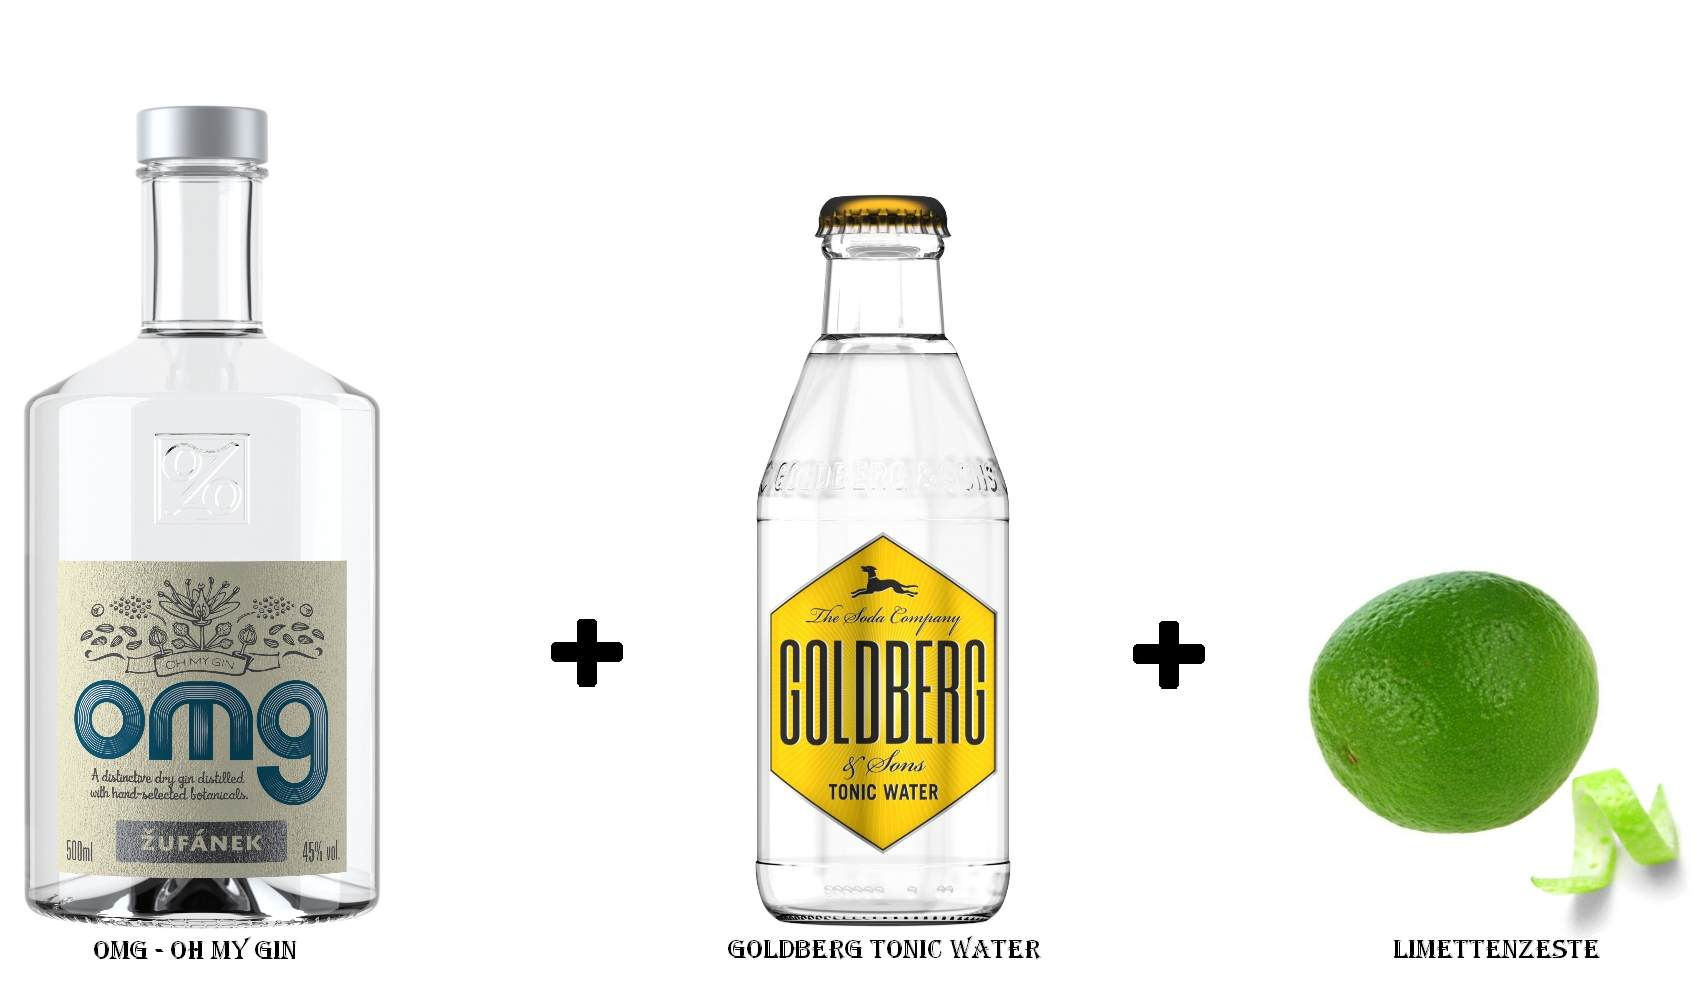 OMG - Oh My Gin + Goldberg Tonic Water + Limettenzeste